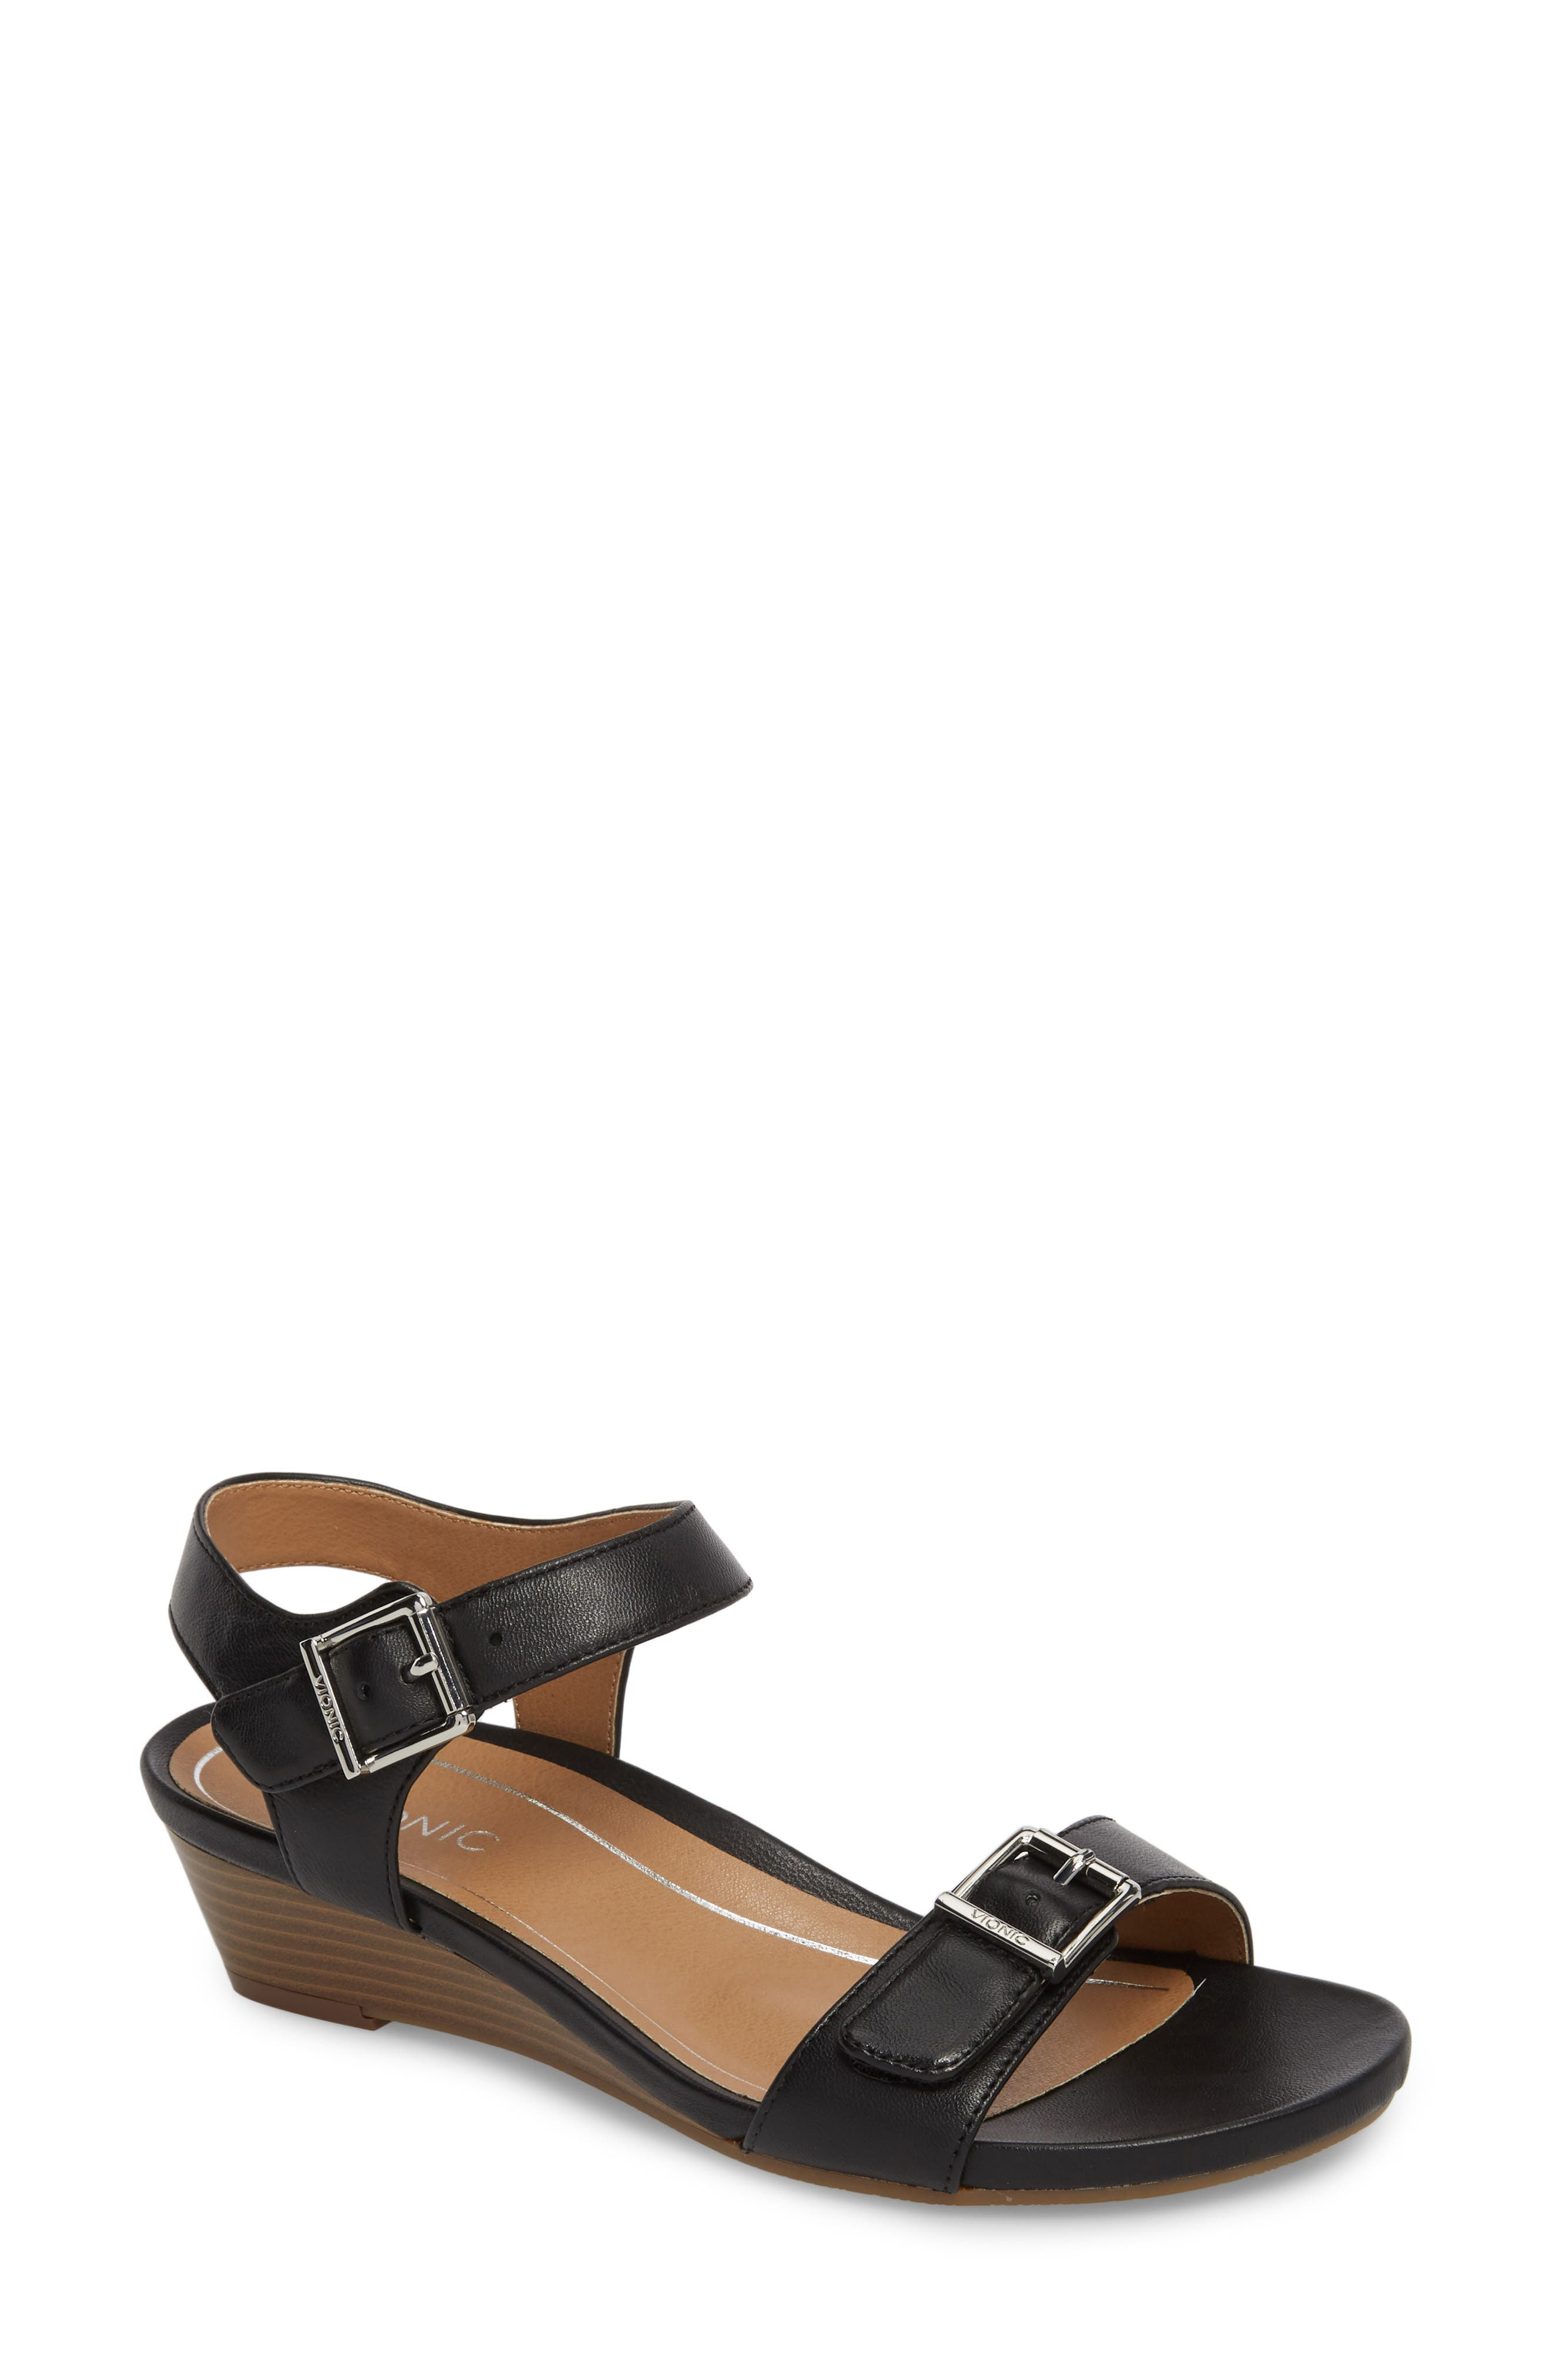 Frances Wedge Sandal,                             Main thumbnail 1, color,                             001